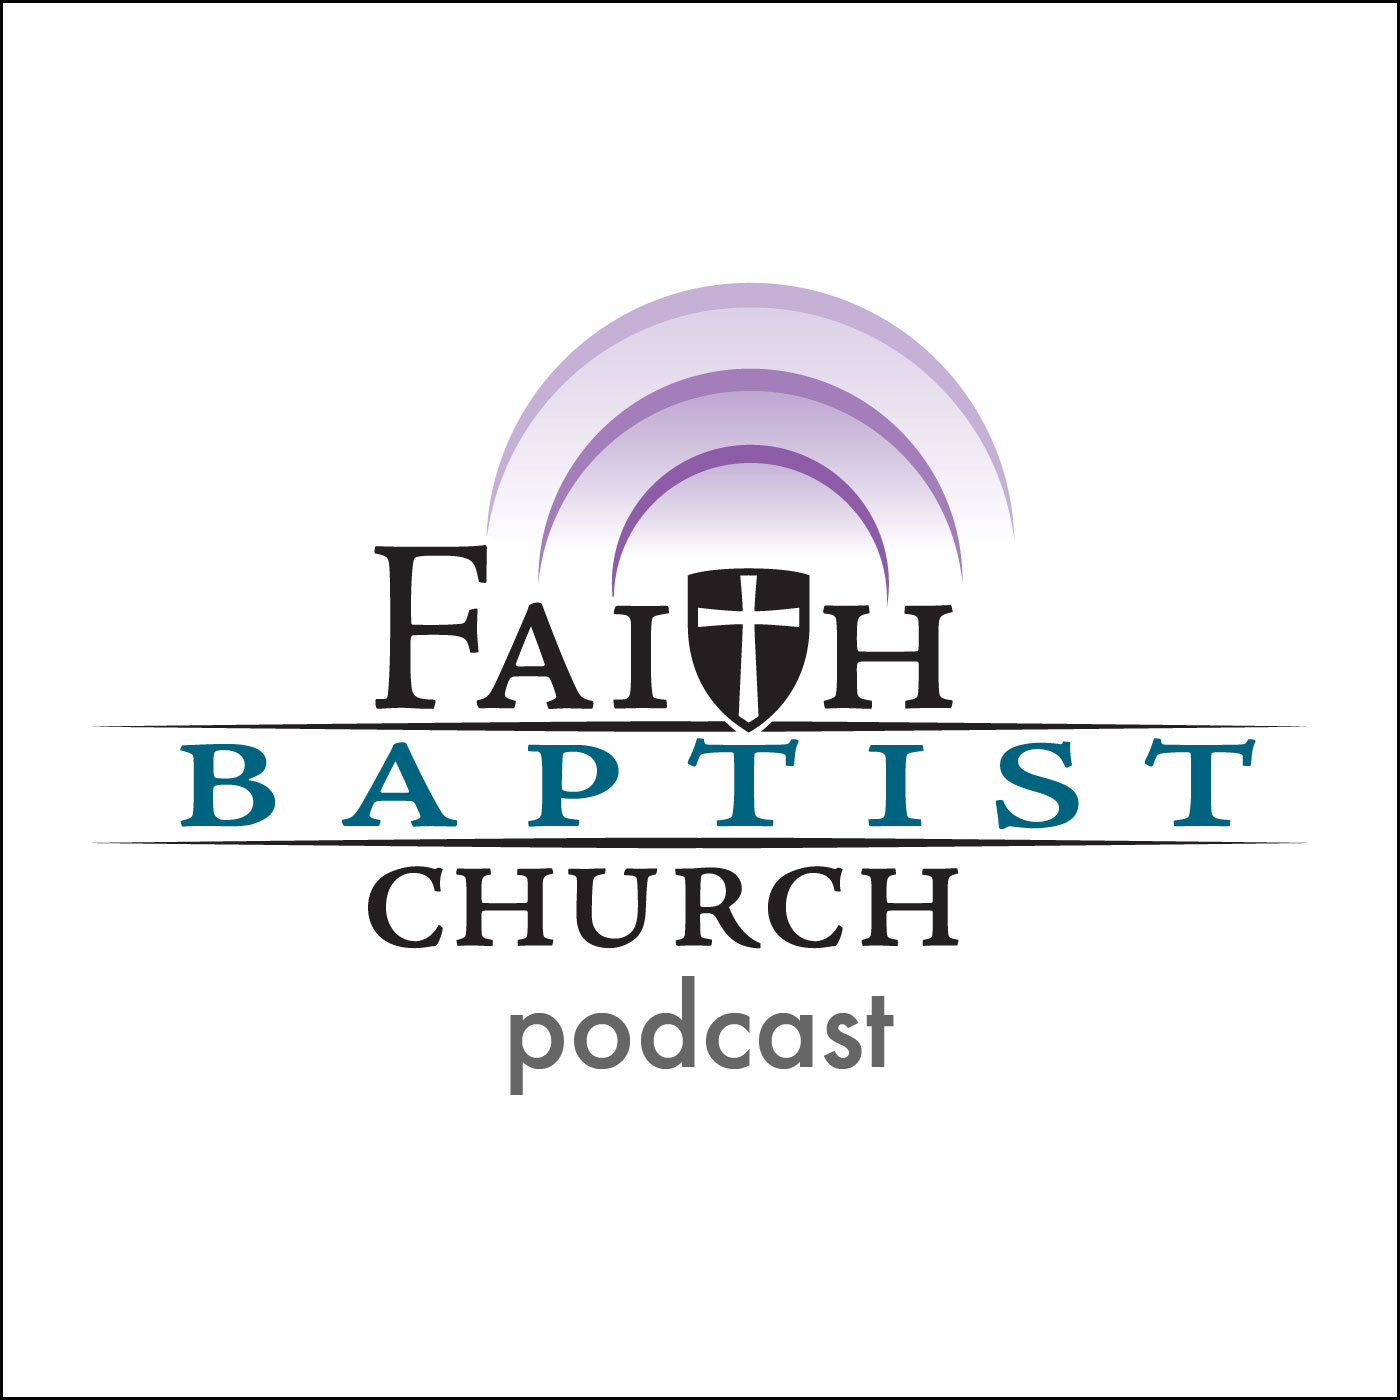 Faith Baptist Church Podcast